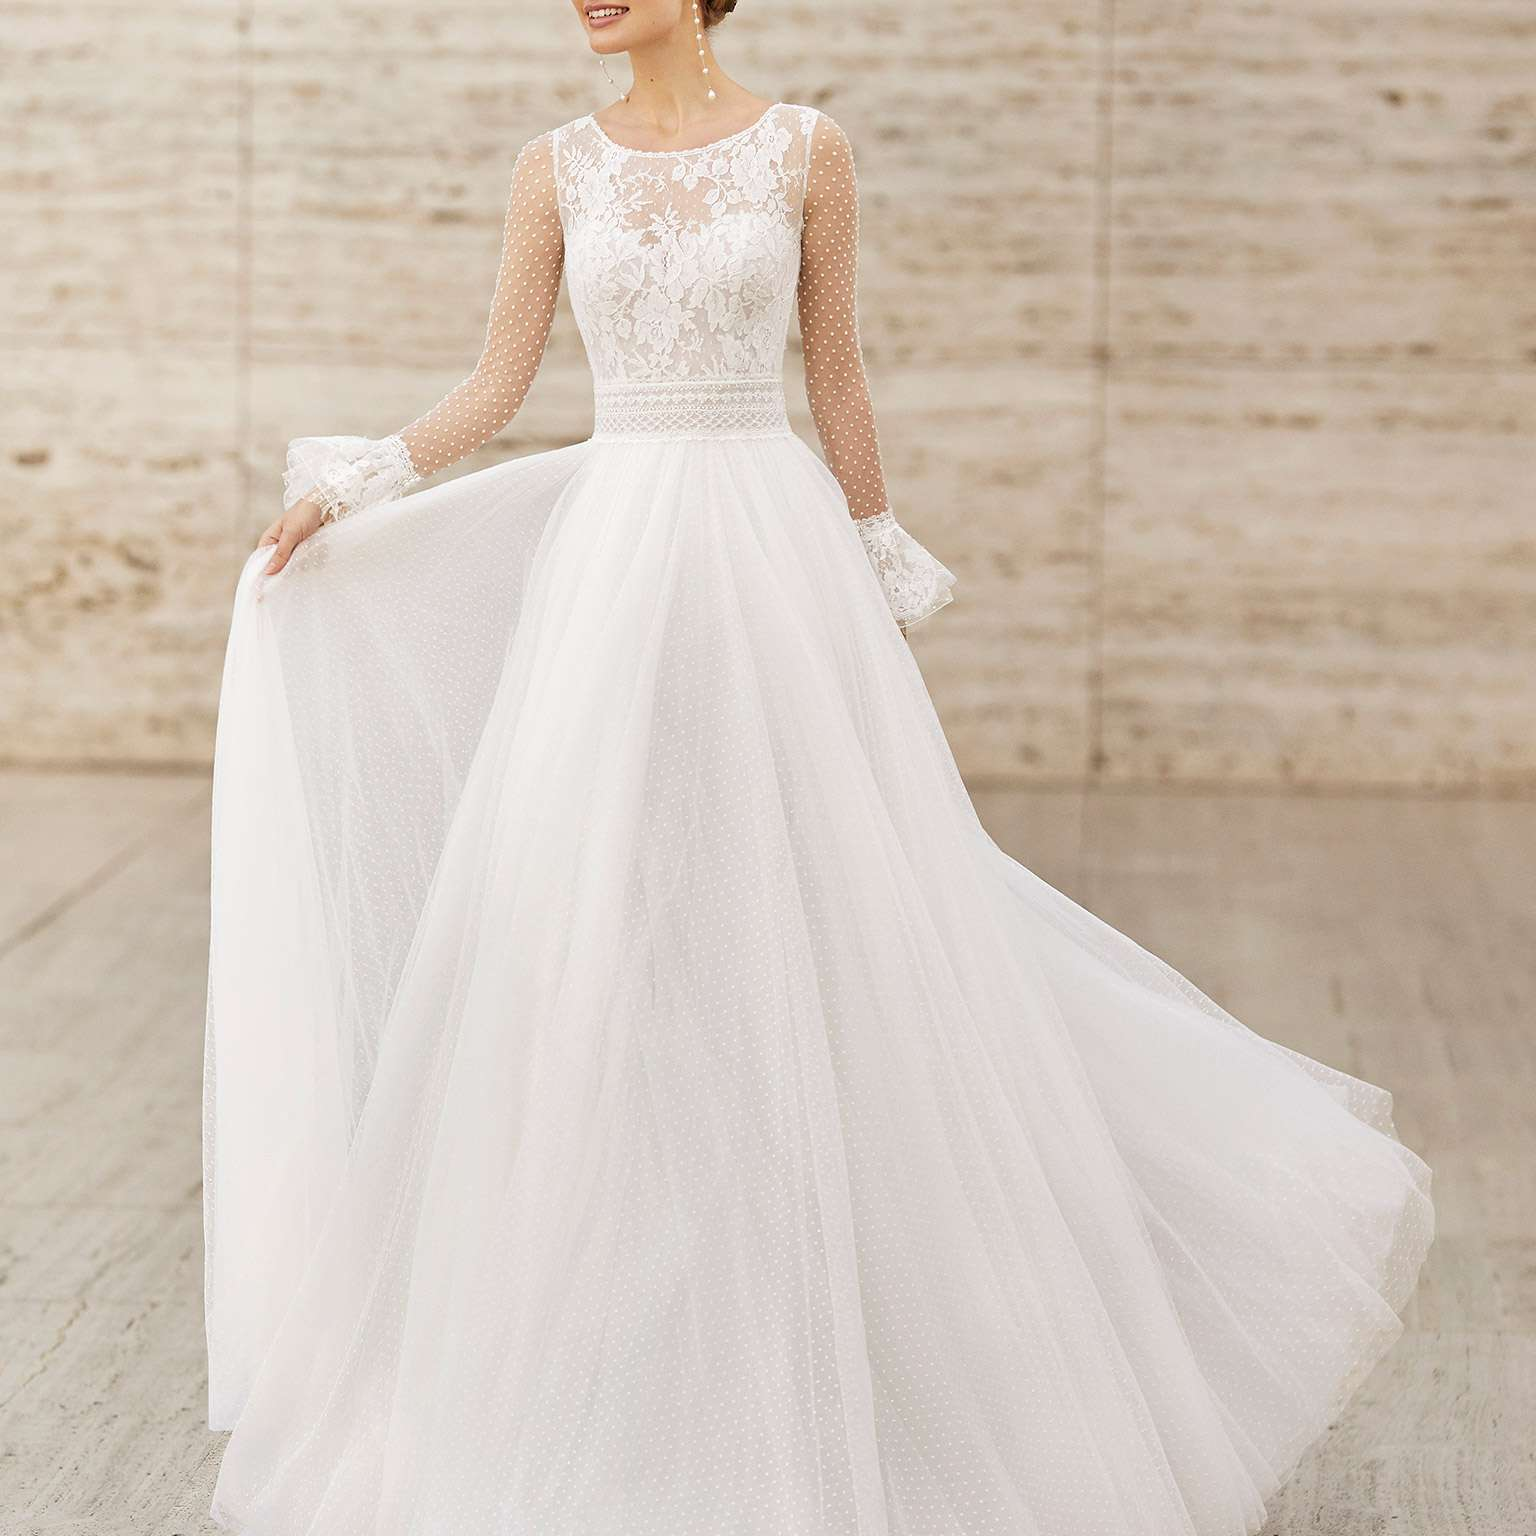 Model in wedding gown with illusion neckline and sleeves